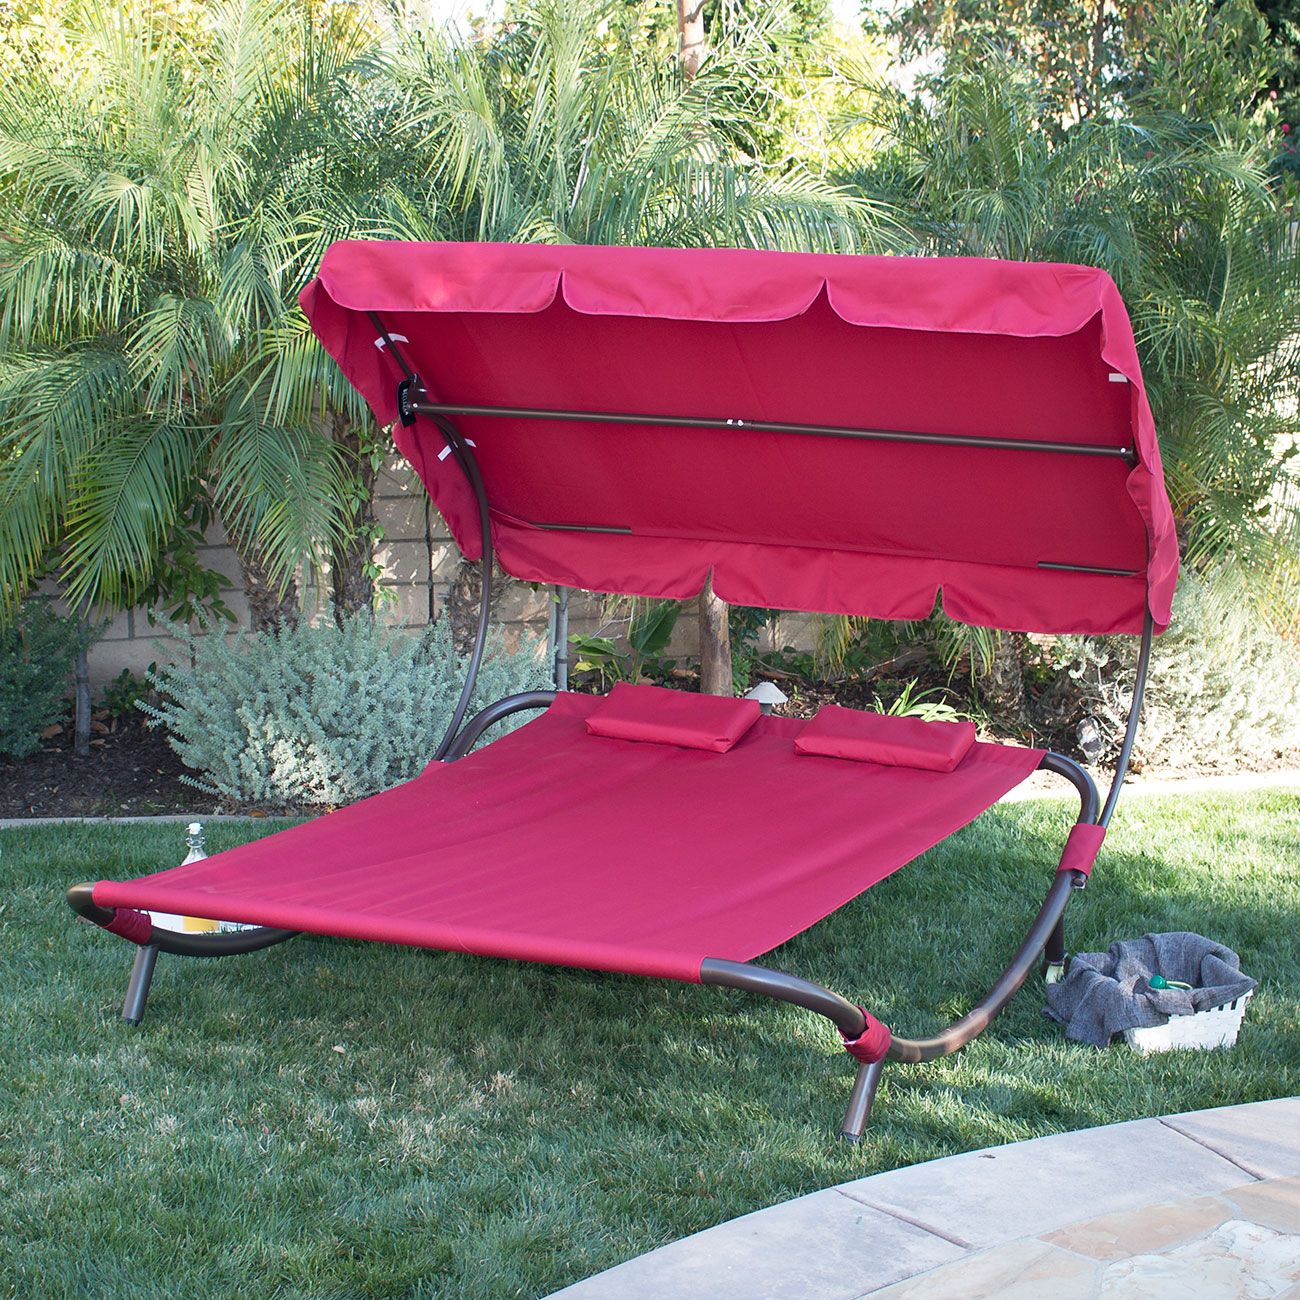 hammock chair with canopy john deere new bed lounger double pool chaise lounge